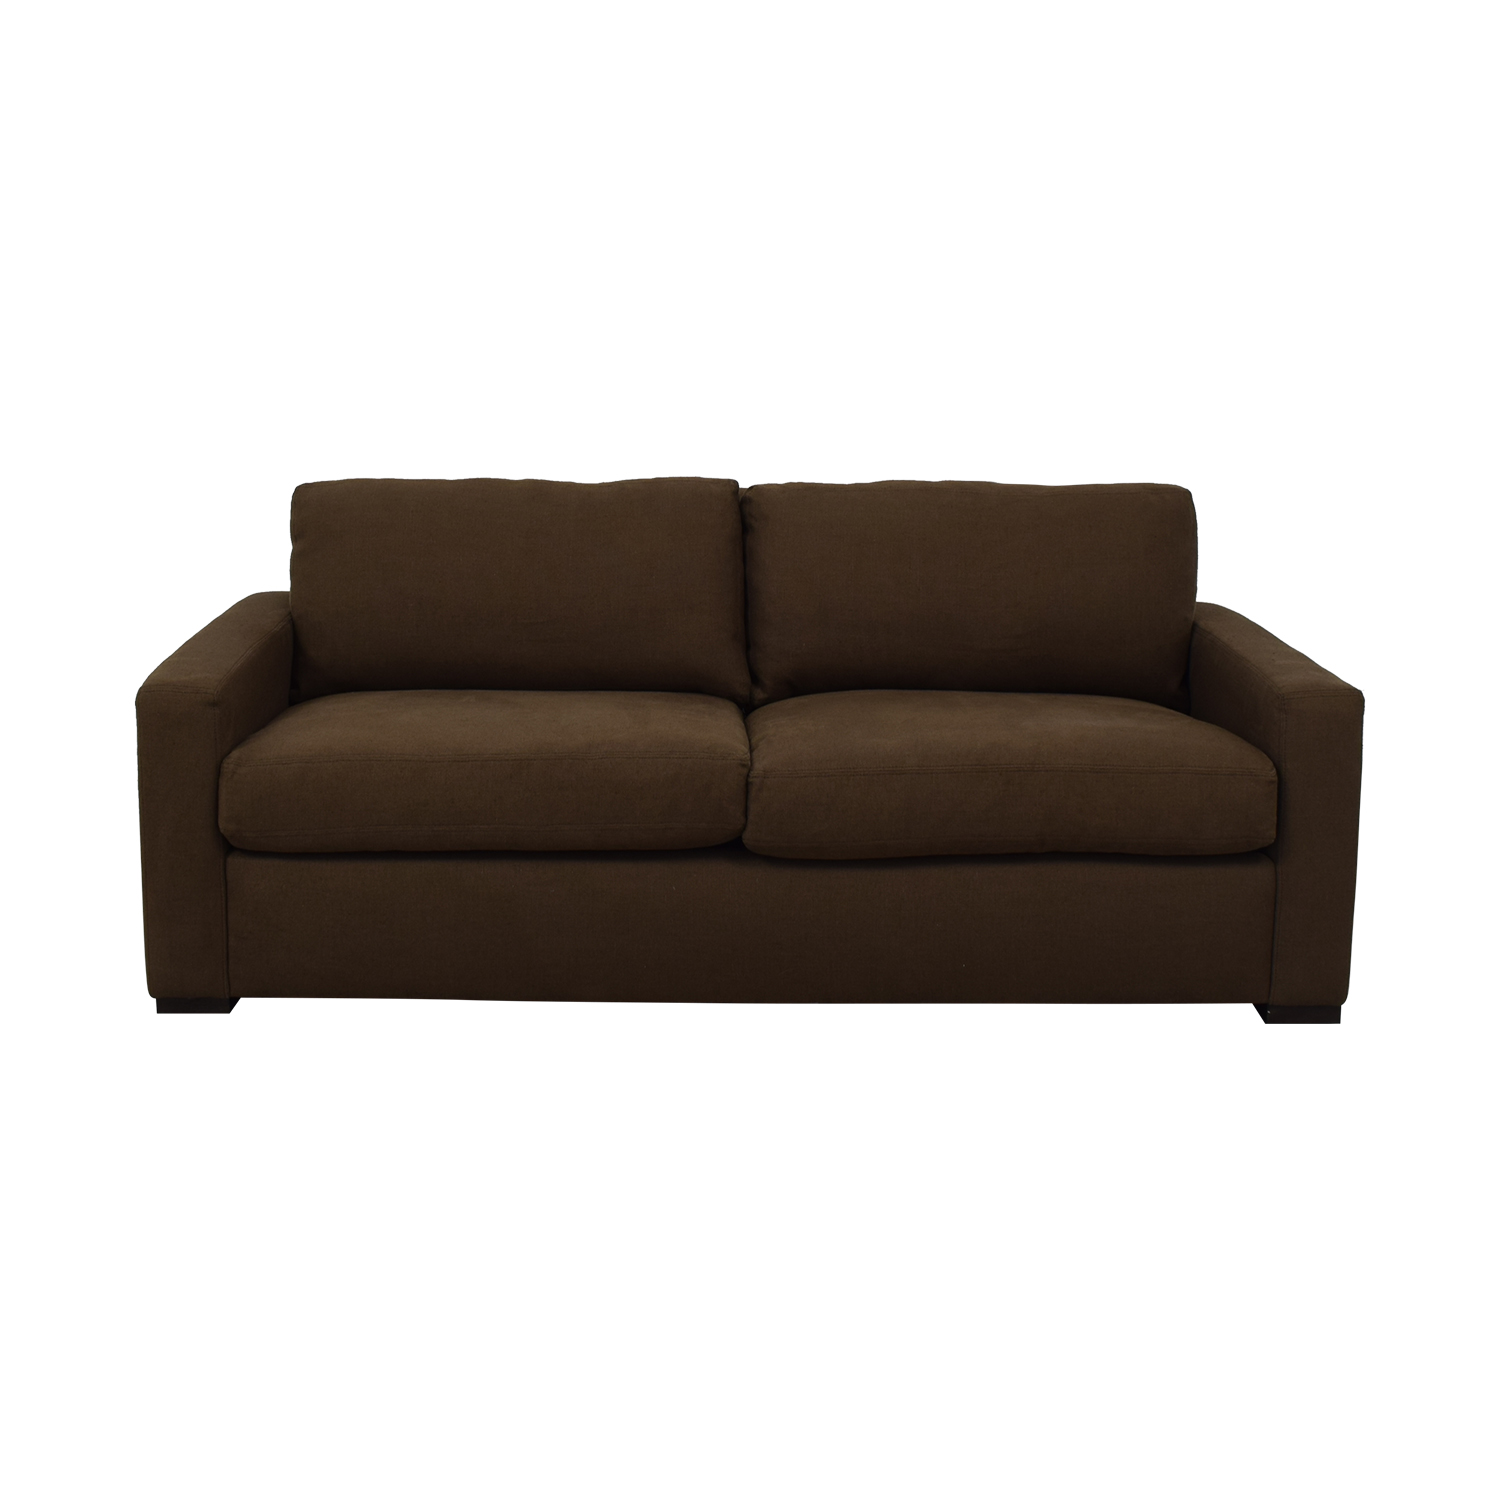 buy Restoration Hardware Maxwell Sofa Restoration Hardware Sofas